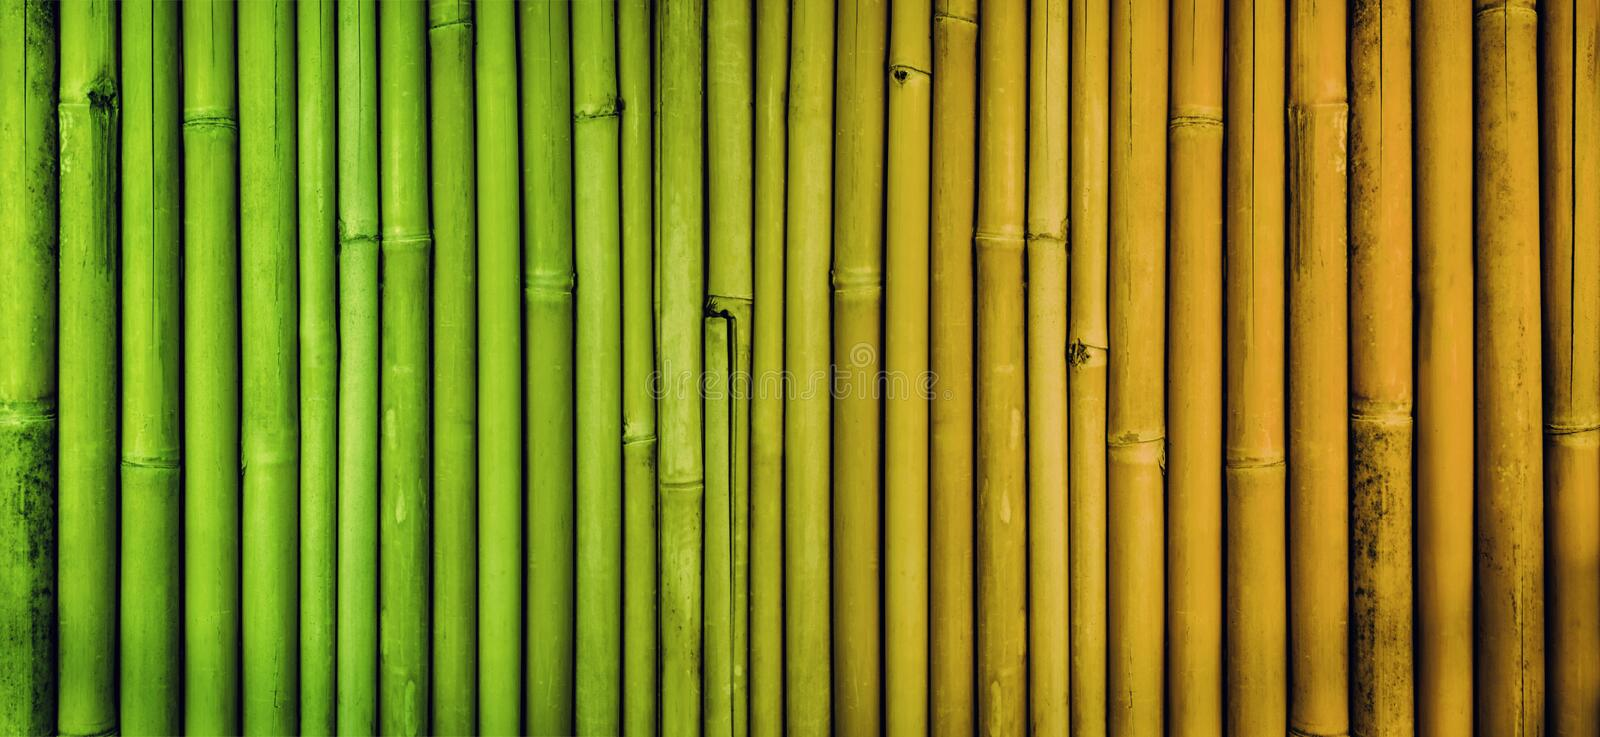 Bamboo texture background, faded bamboo fence wall, aging process bamboo stock images